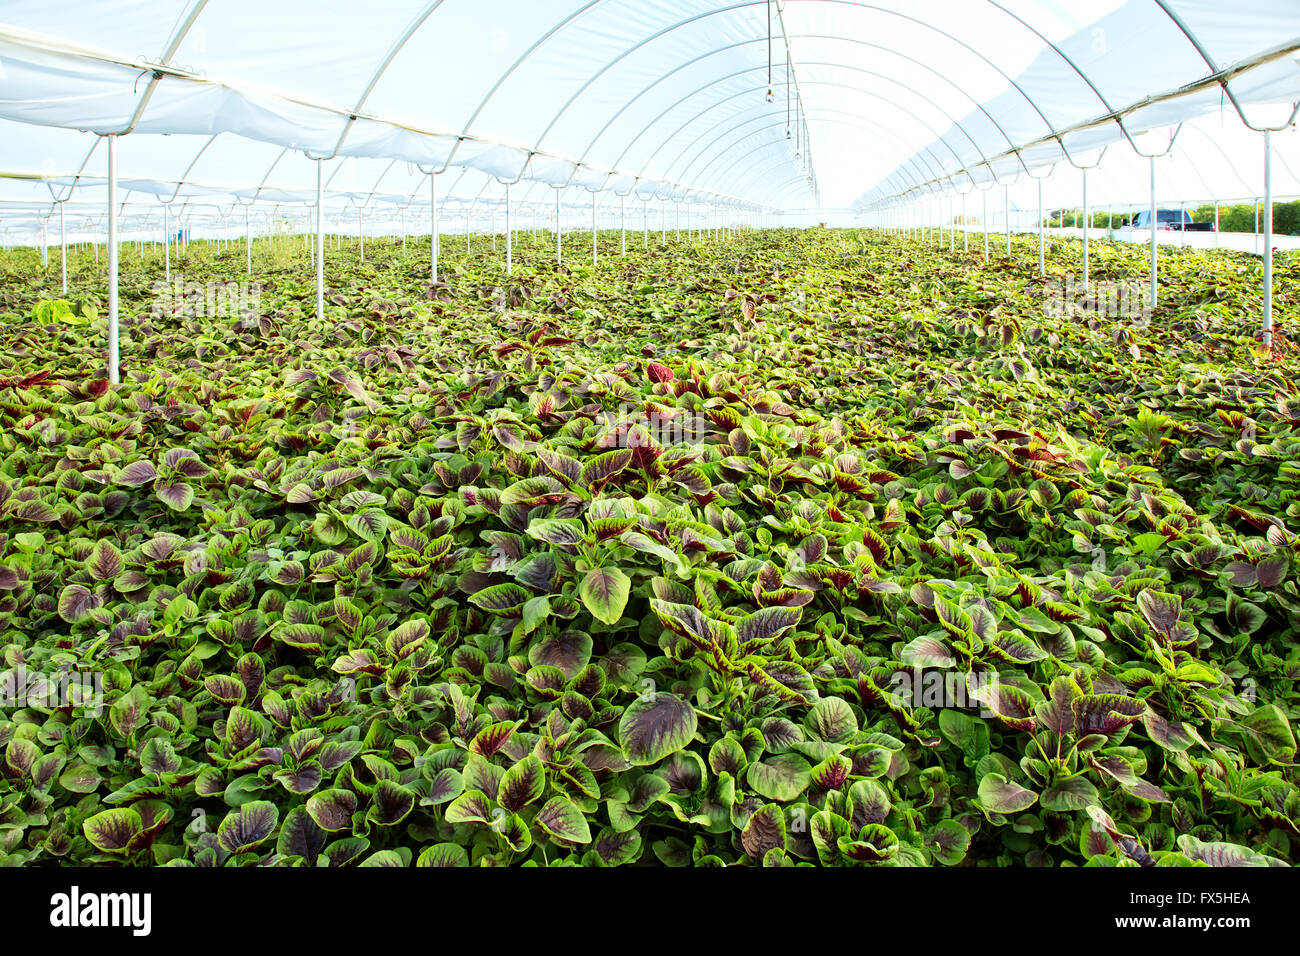 Jan choi, Chinese spinach growing in greenhouse. - Stock Image